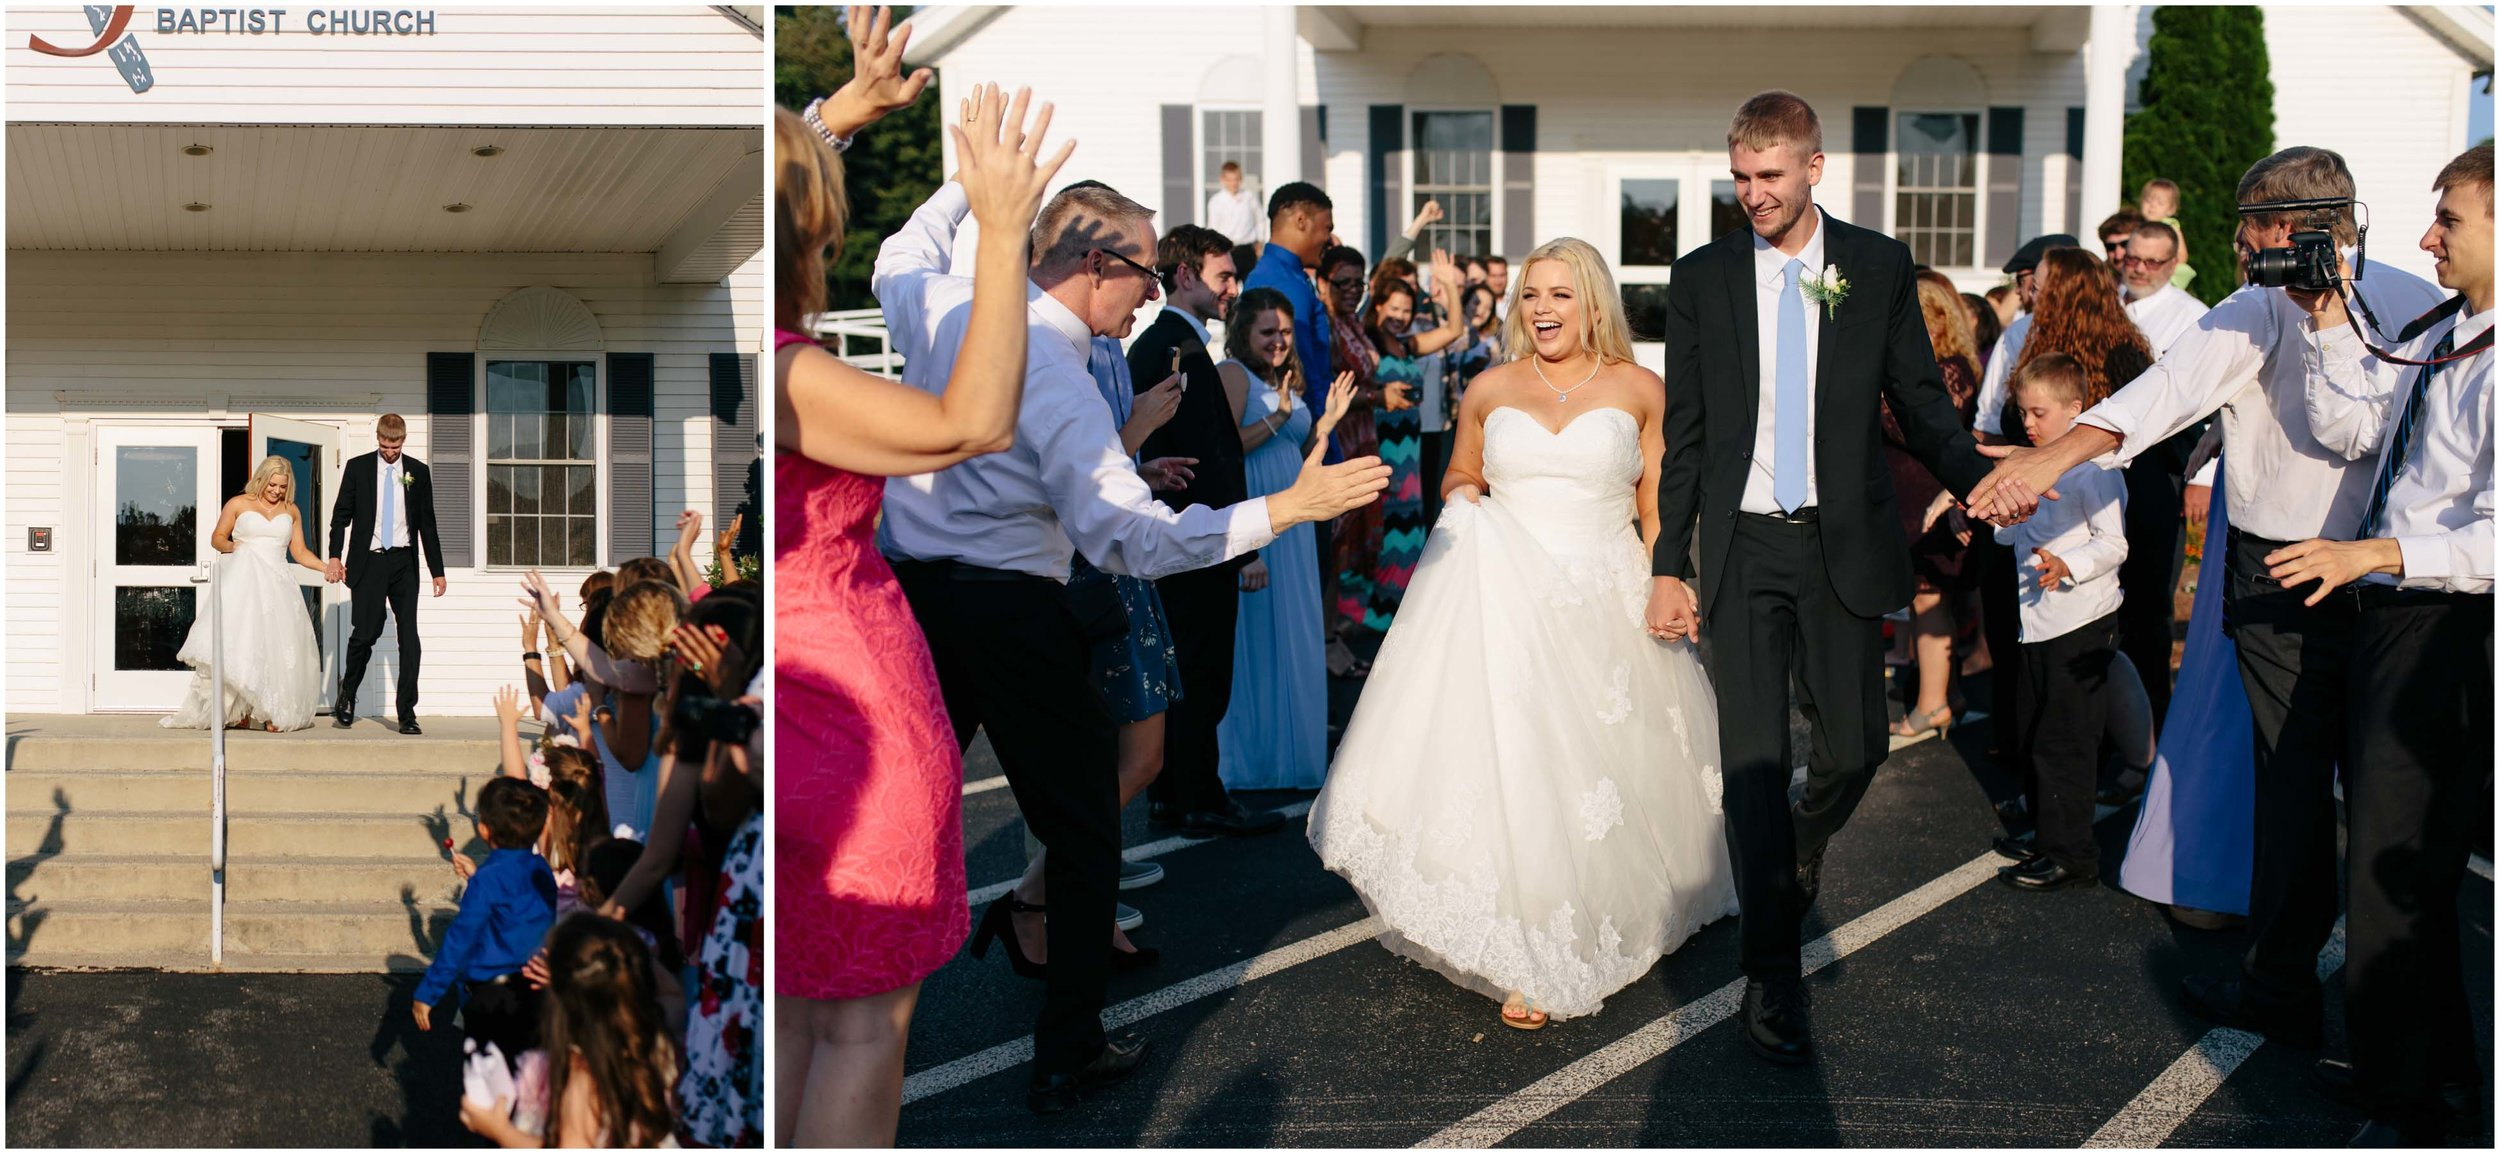 Cozy Country Church Wedding in Pepperell, Massachusetts bride and groom exit